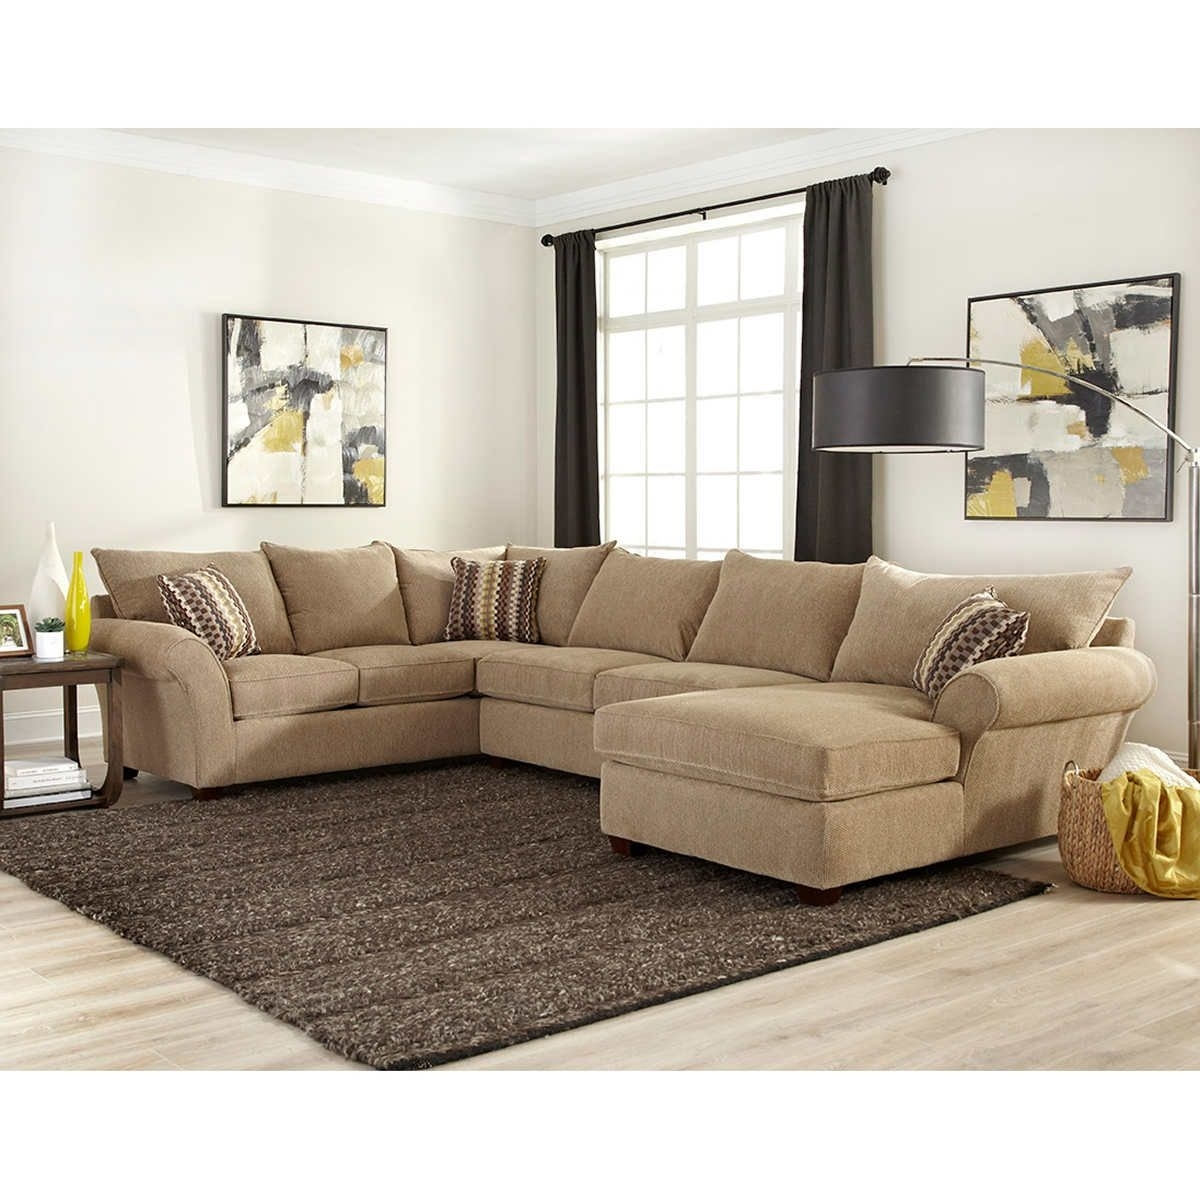 Cabot Fabric Sectional | For My Home | Pinterest | Basements Pertaining To Fabric Sectional Sofas (View 7 of 10)